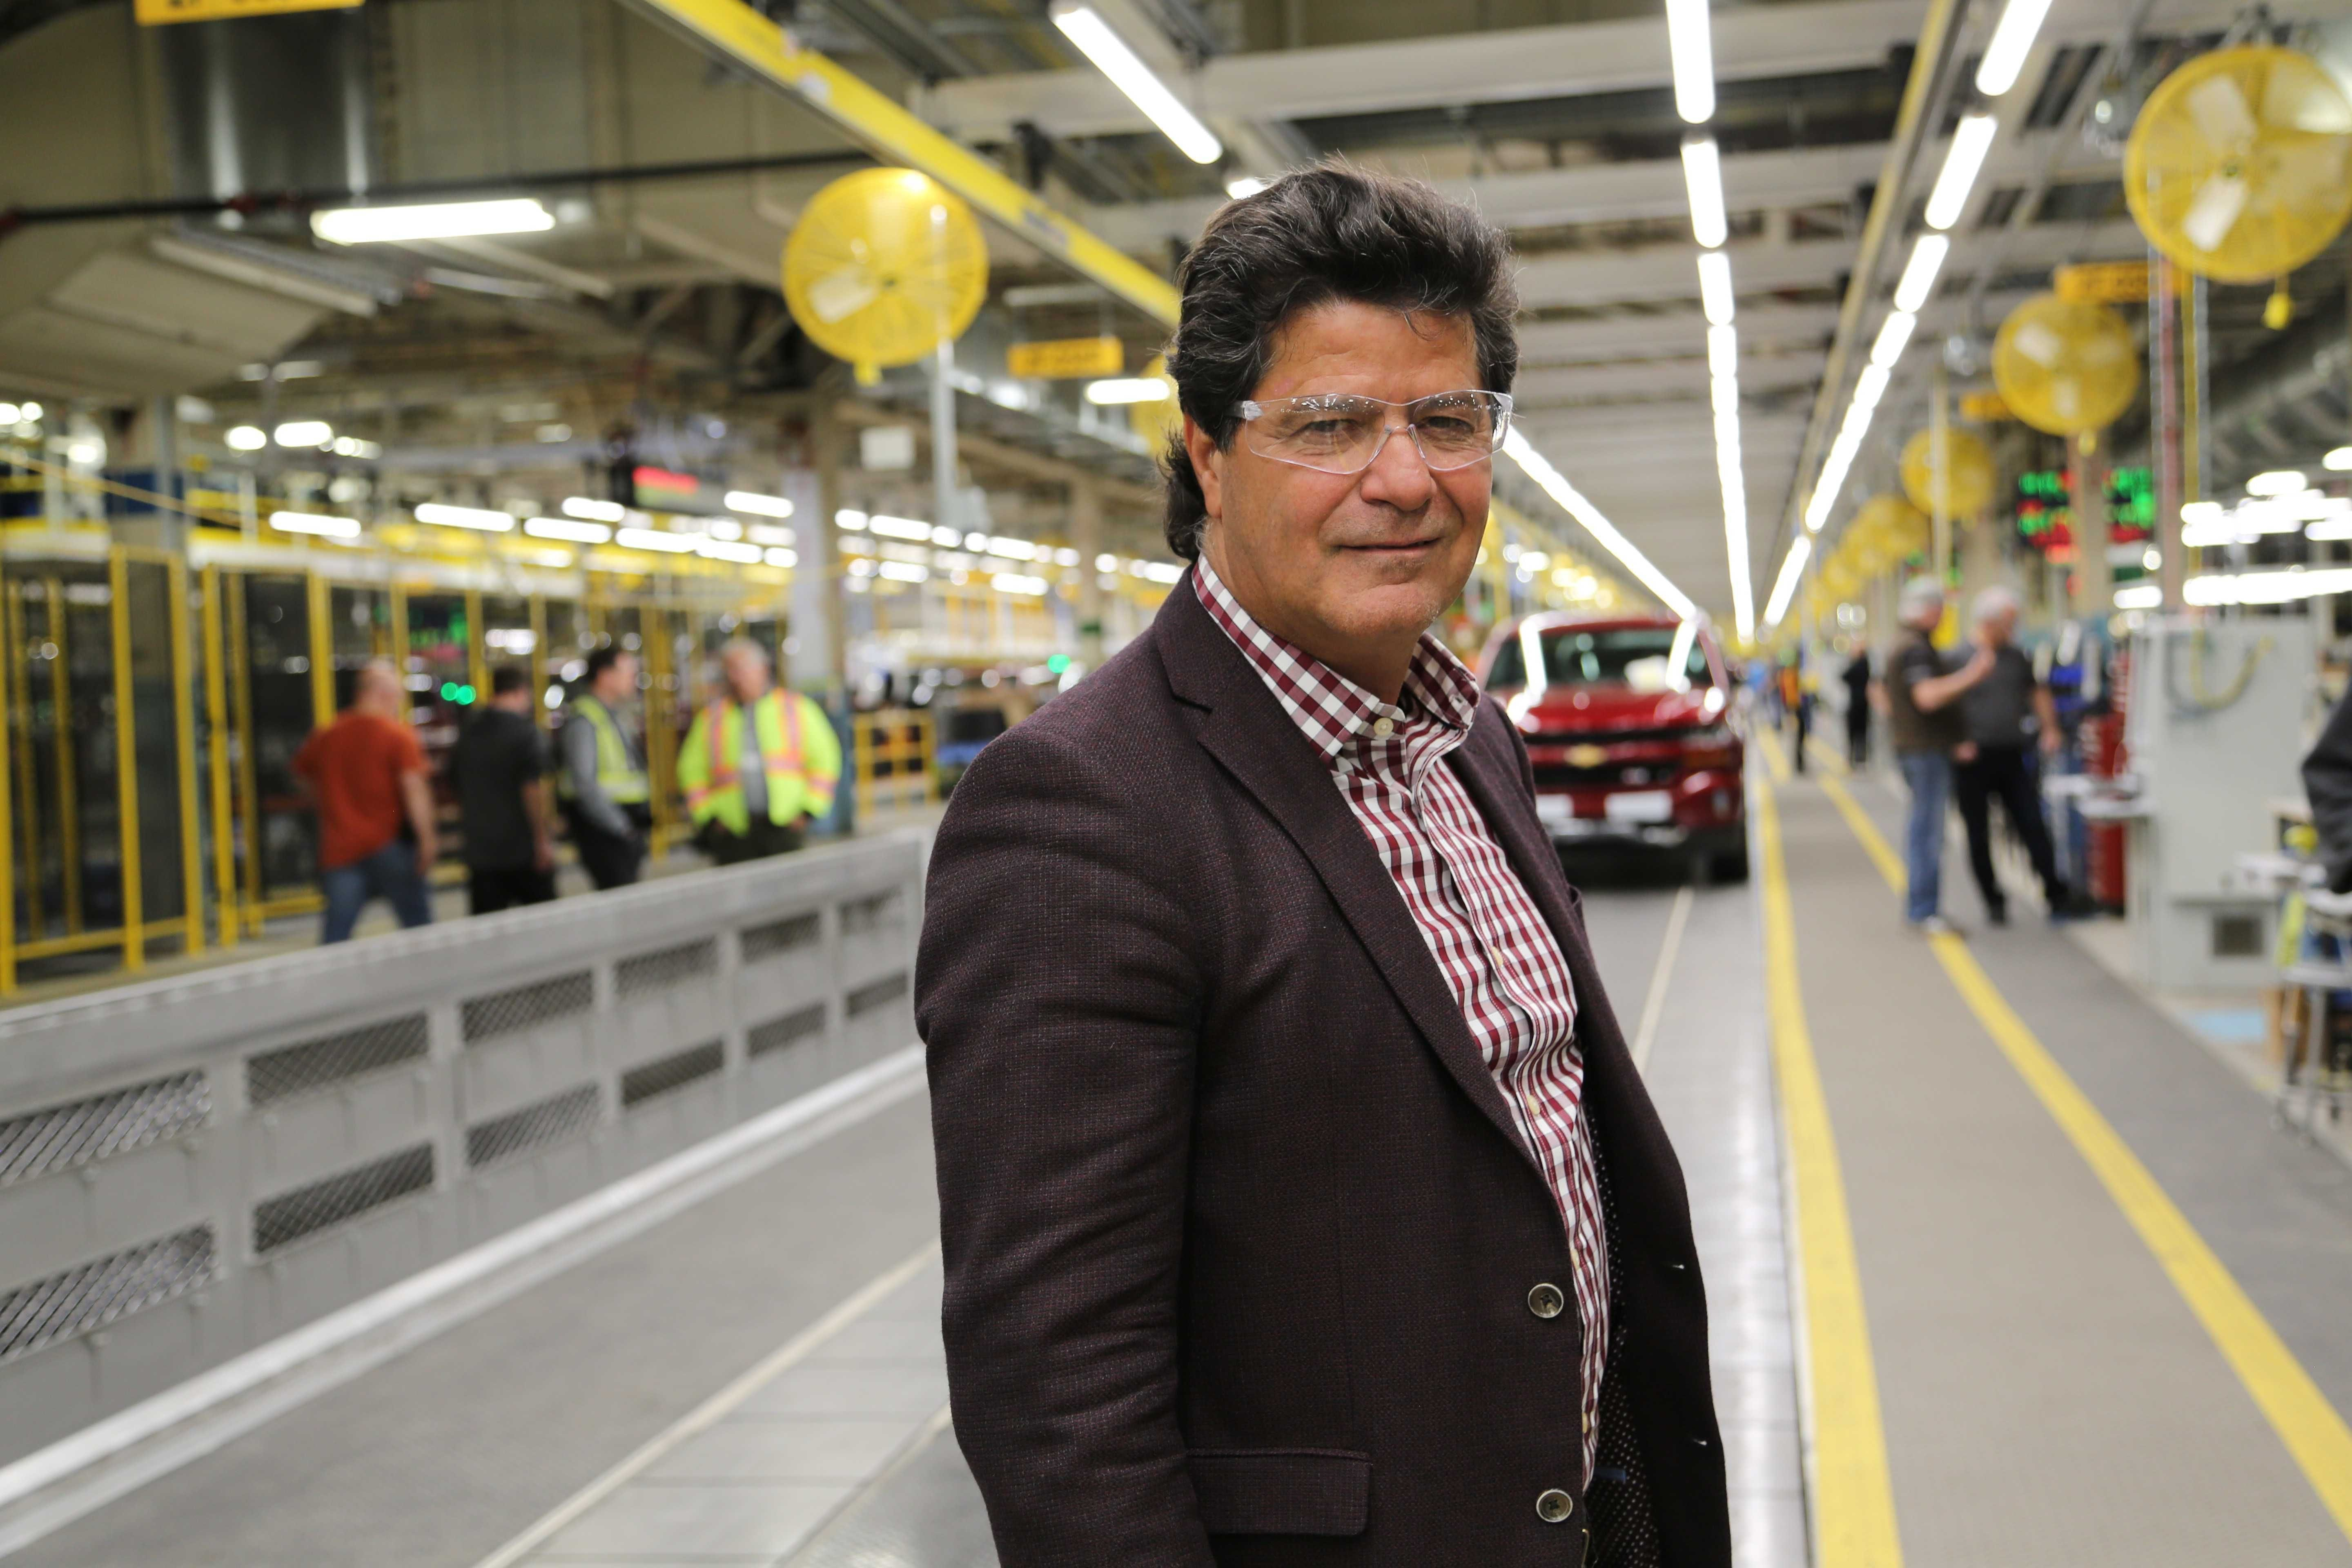 Unifor National President Jerry Dias stands along the assembly line at General Motors' Oshawa Assembly Plant on Feb. 16, 2018. GM has agreed to restart production of Chevrolet Silverado and GMC Sierra light-duty and heavy-duty pickups at the plant in 2022.